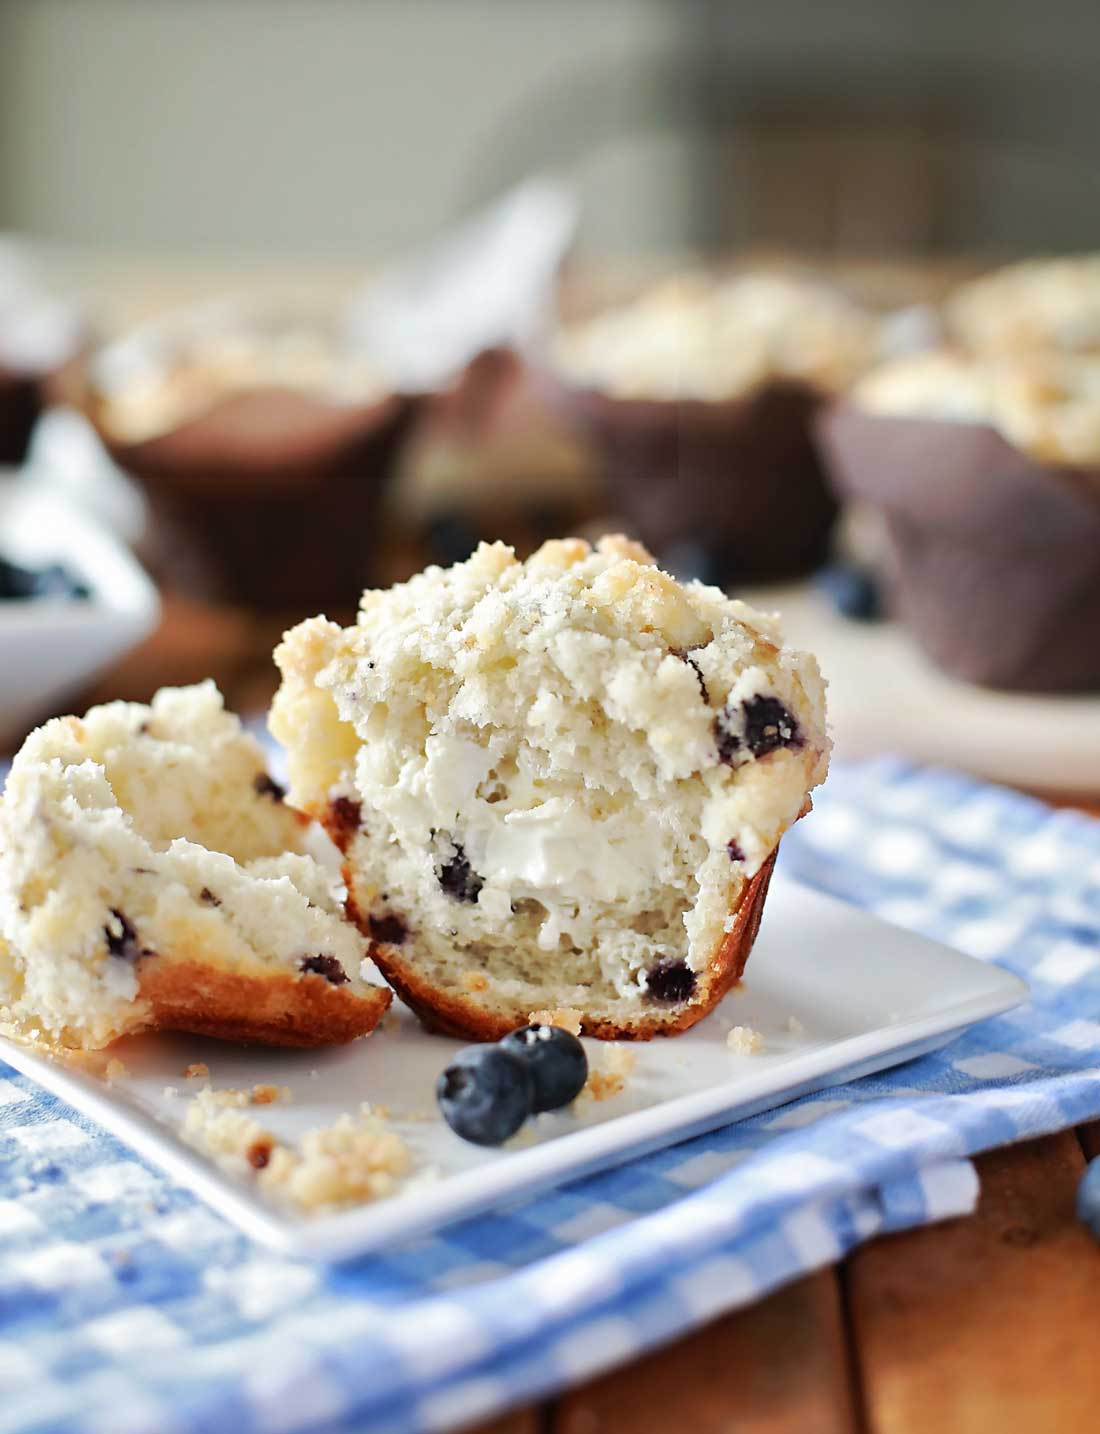 Blueberry Mufins with cream cheese and topped with streusel by Flirting with Flavor